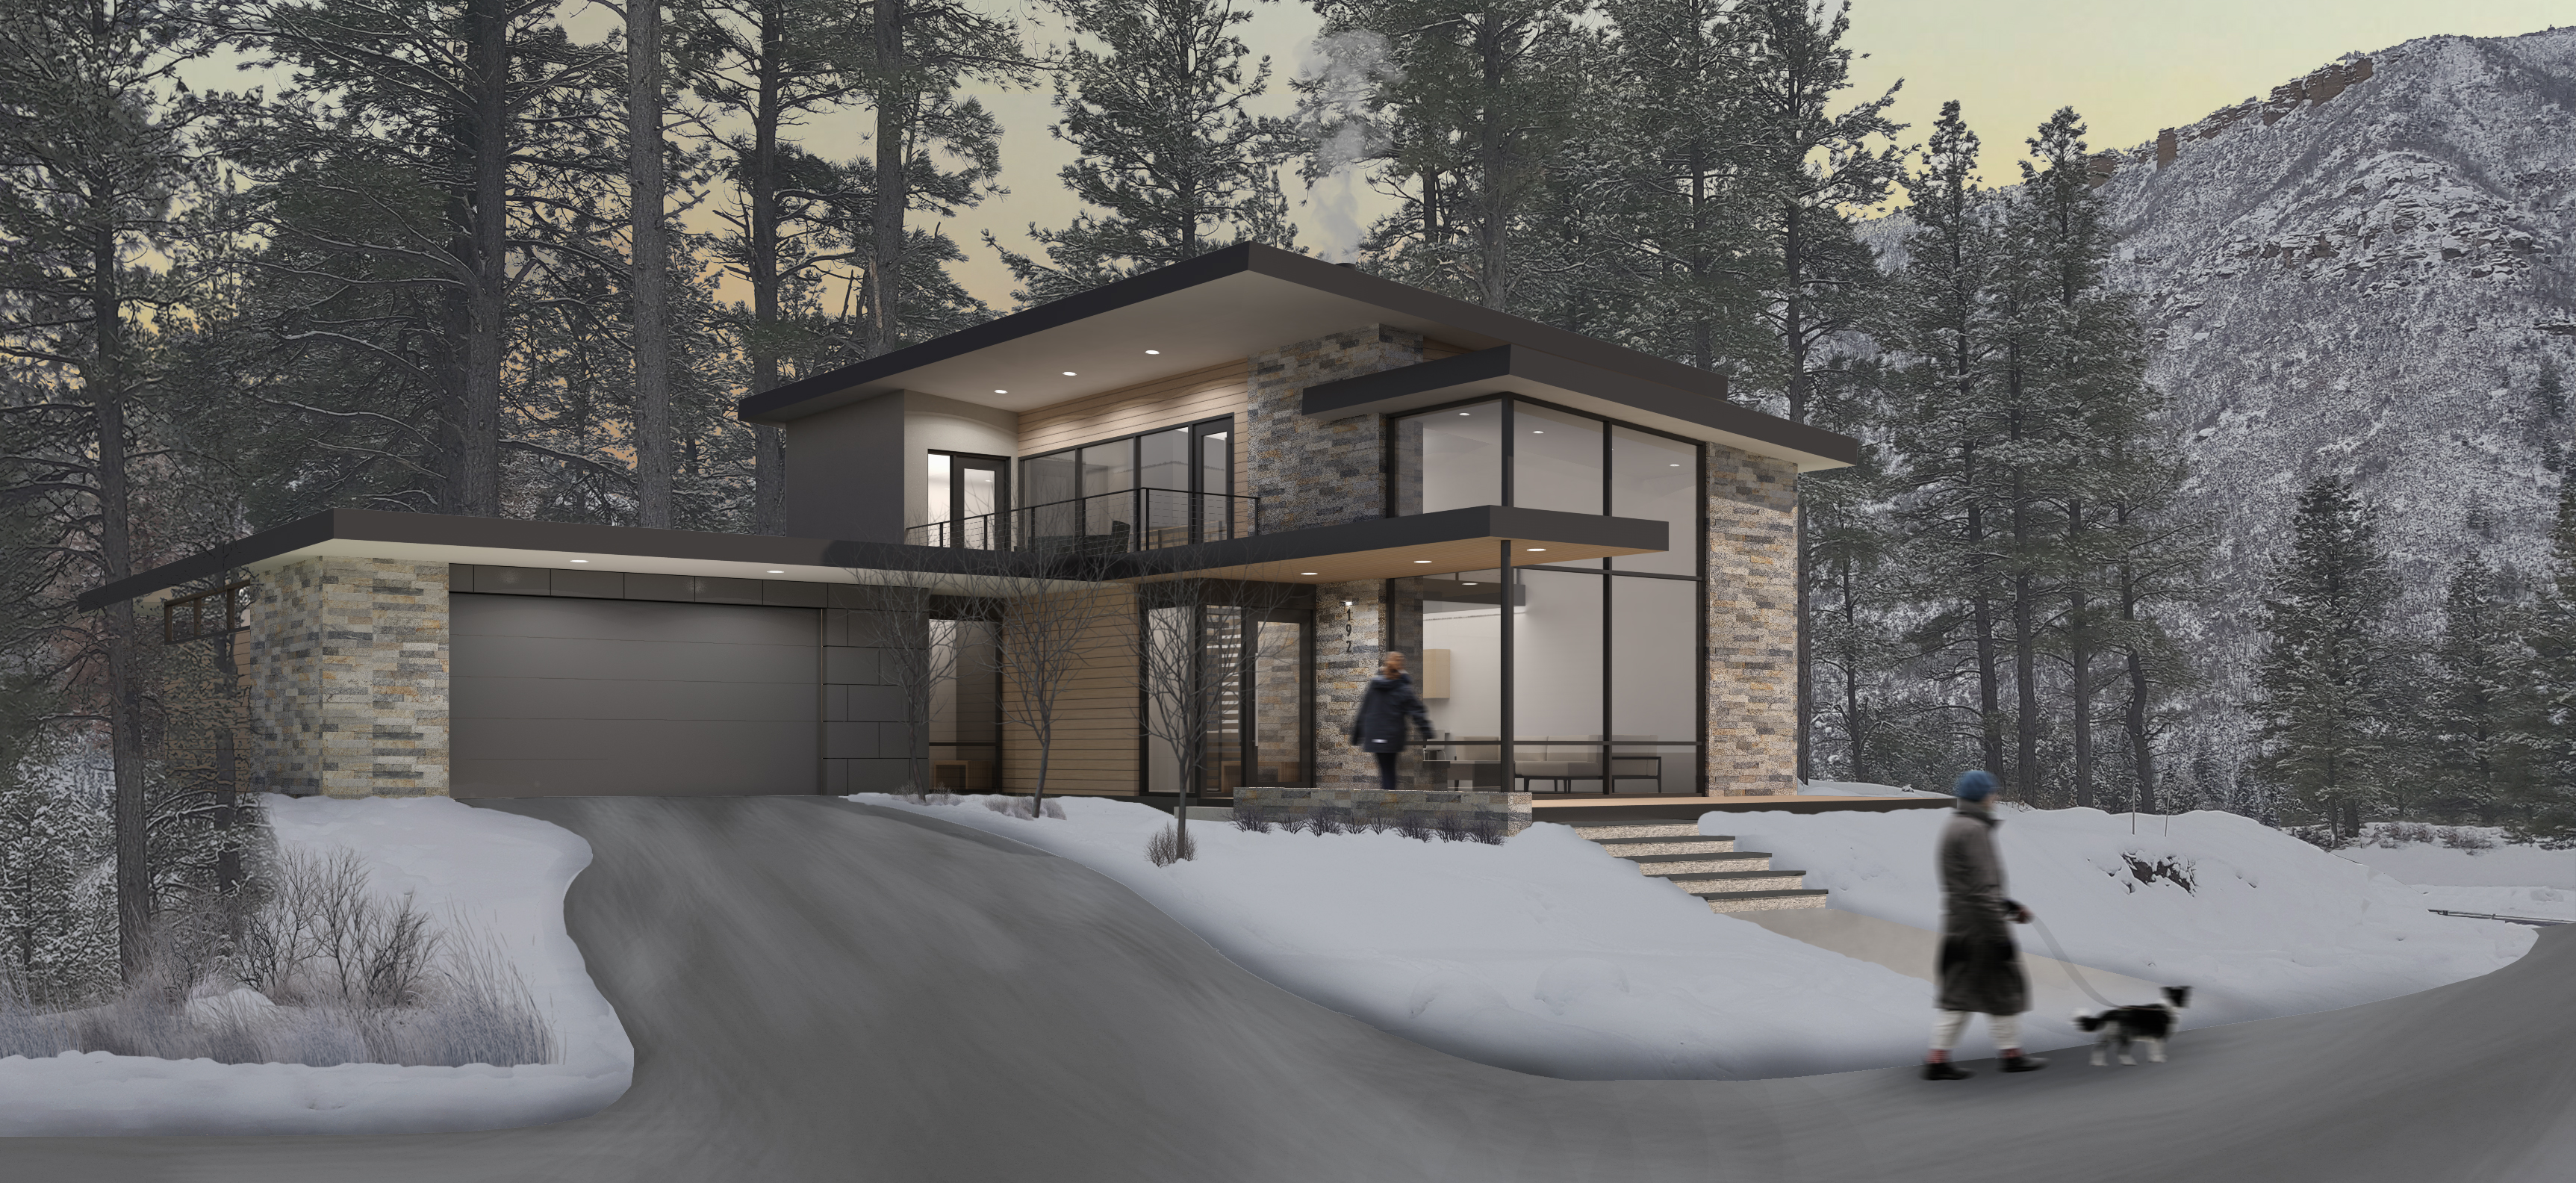 TwinButtes-Lot24-192WoodRoseLn-Rendering